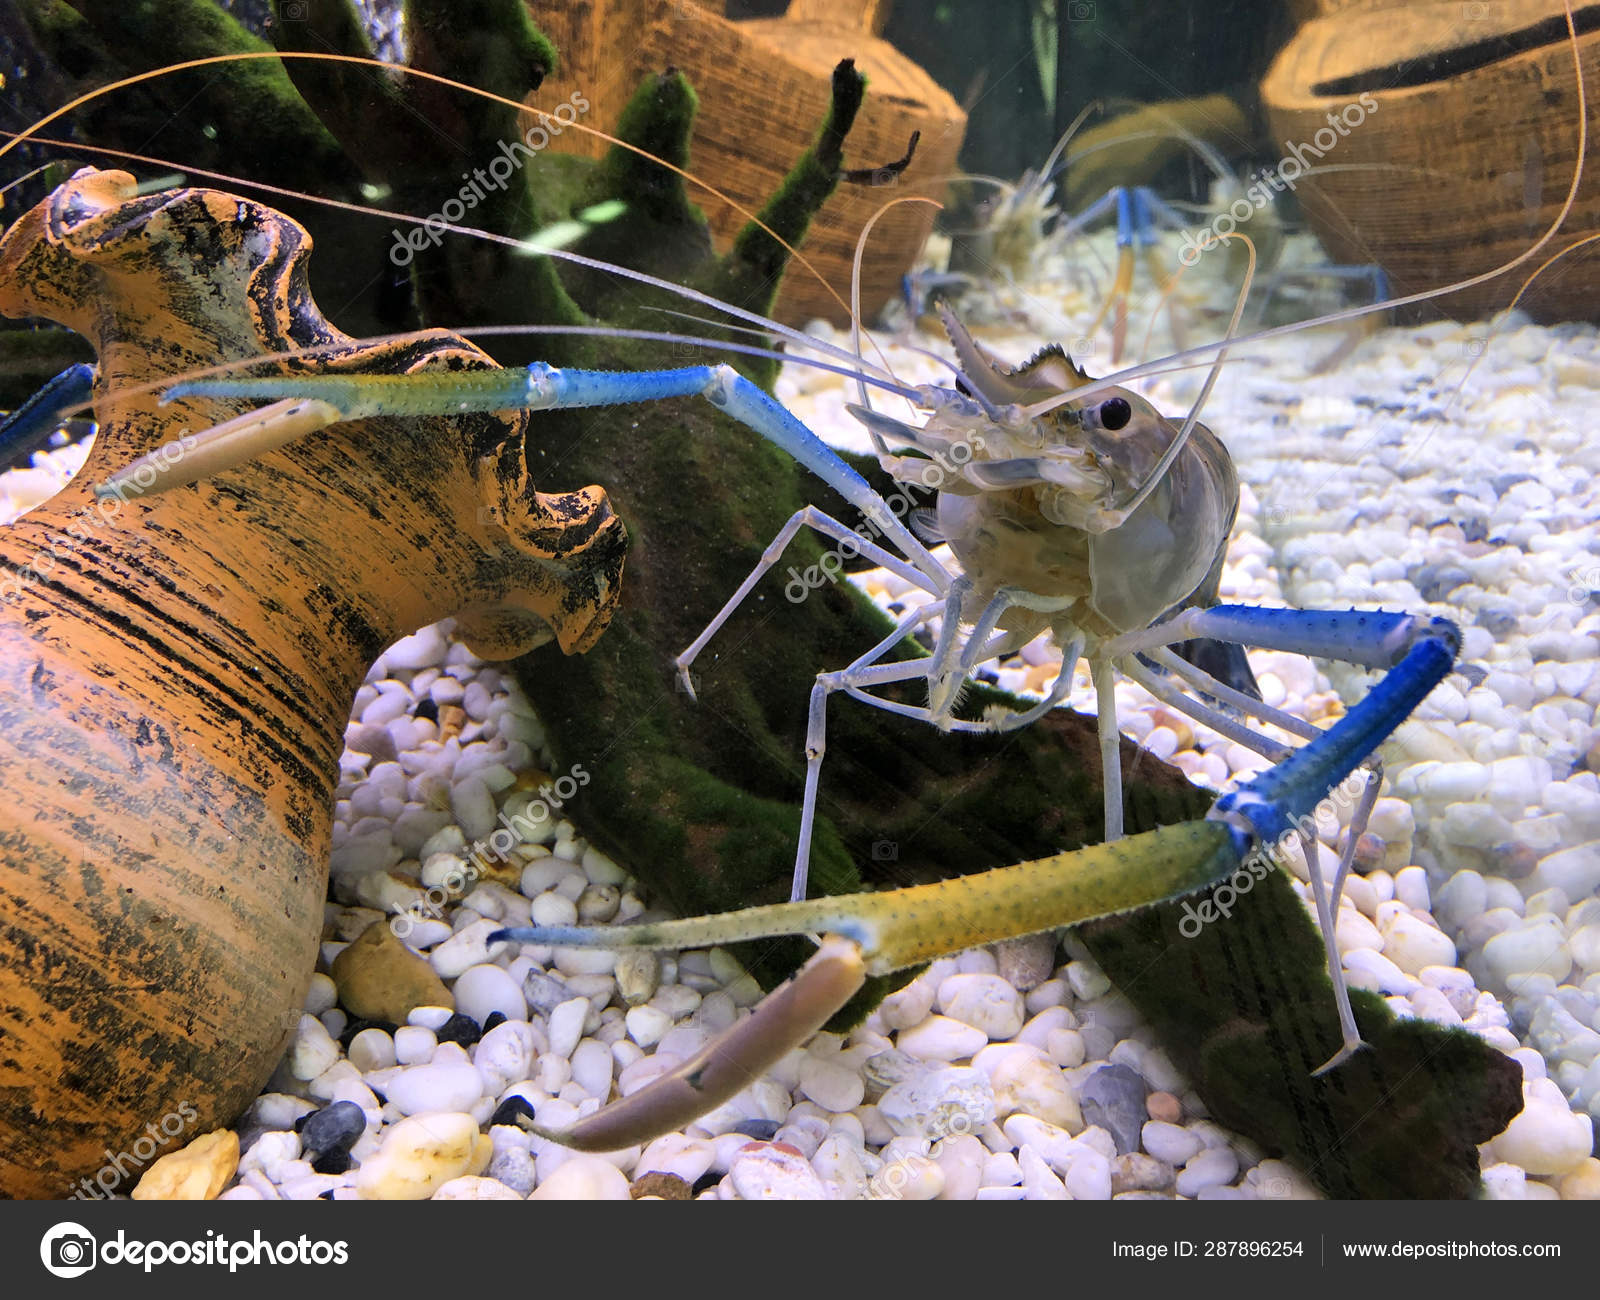 Giant freshwater prawn or giant river shrimp in tank